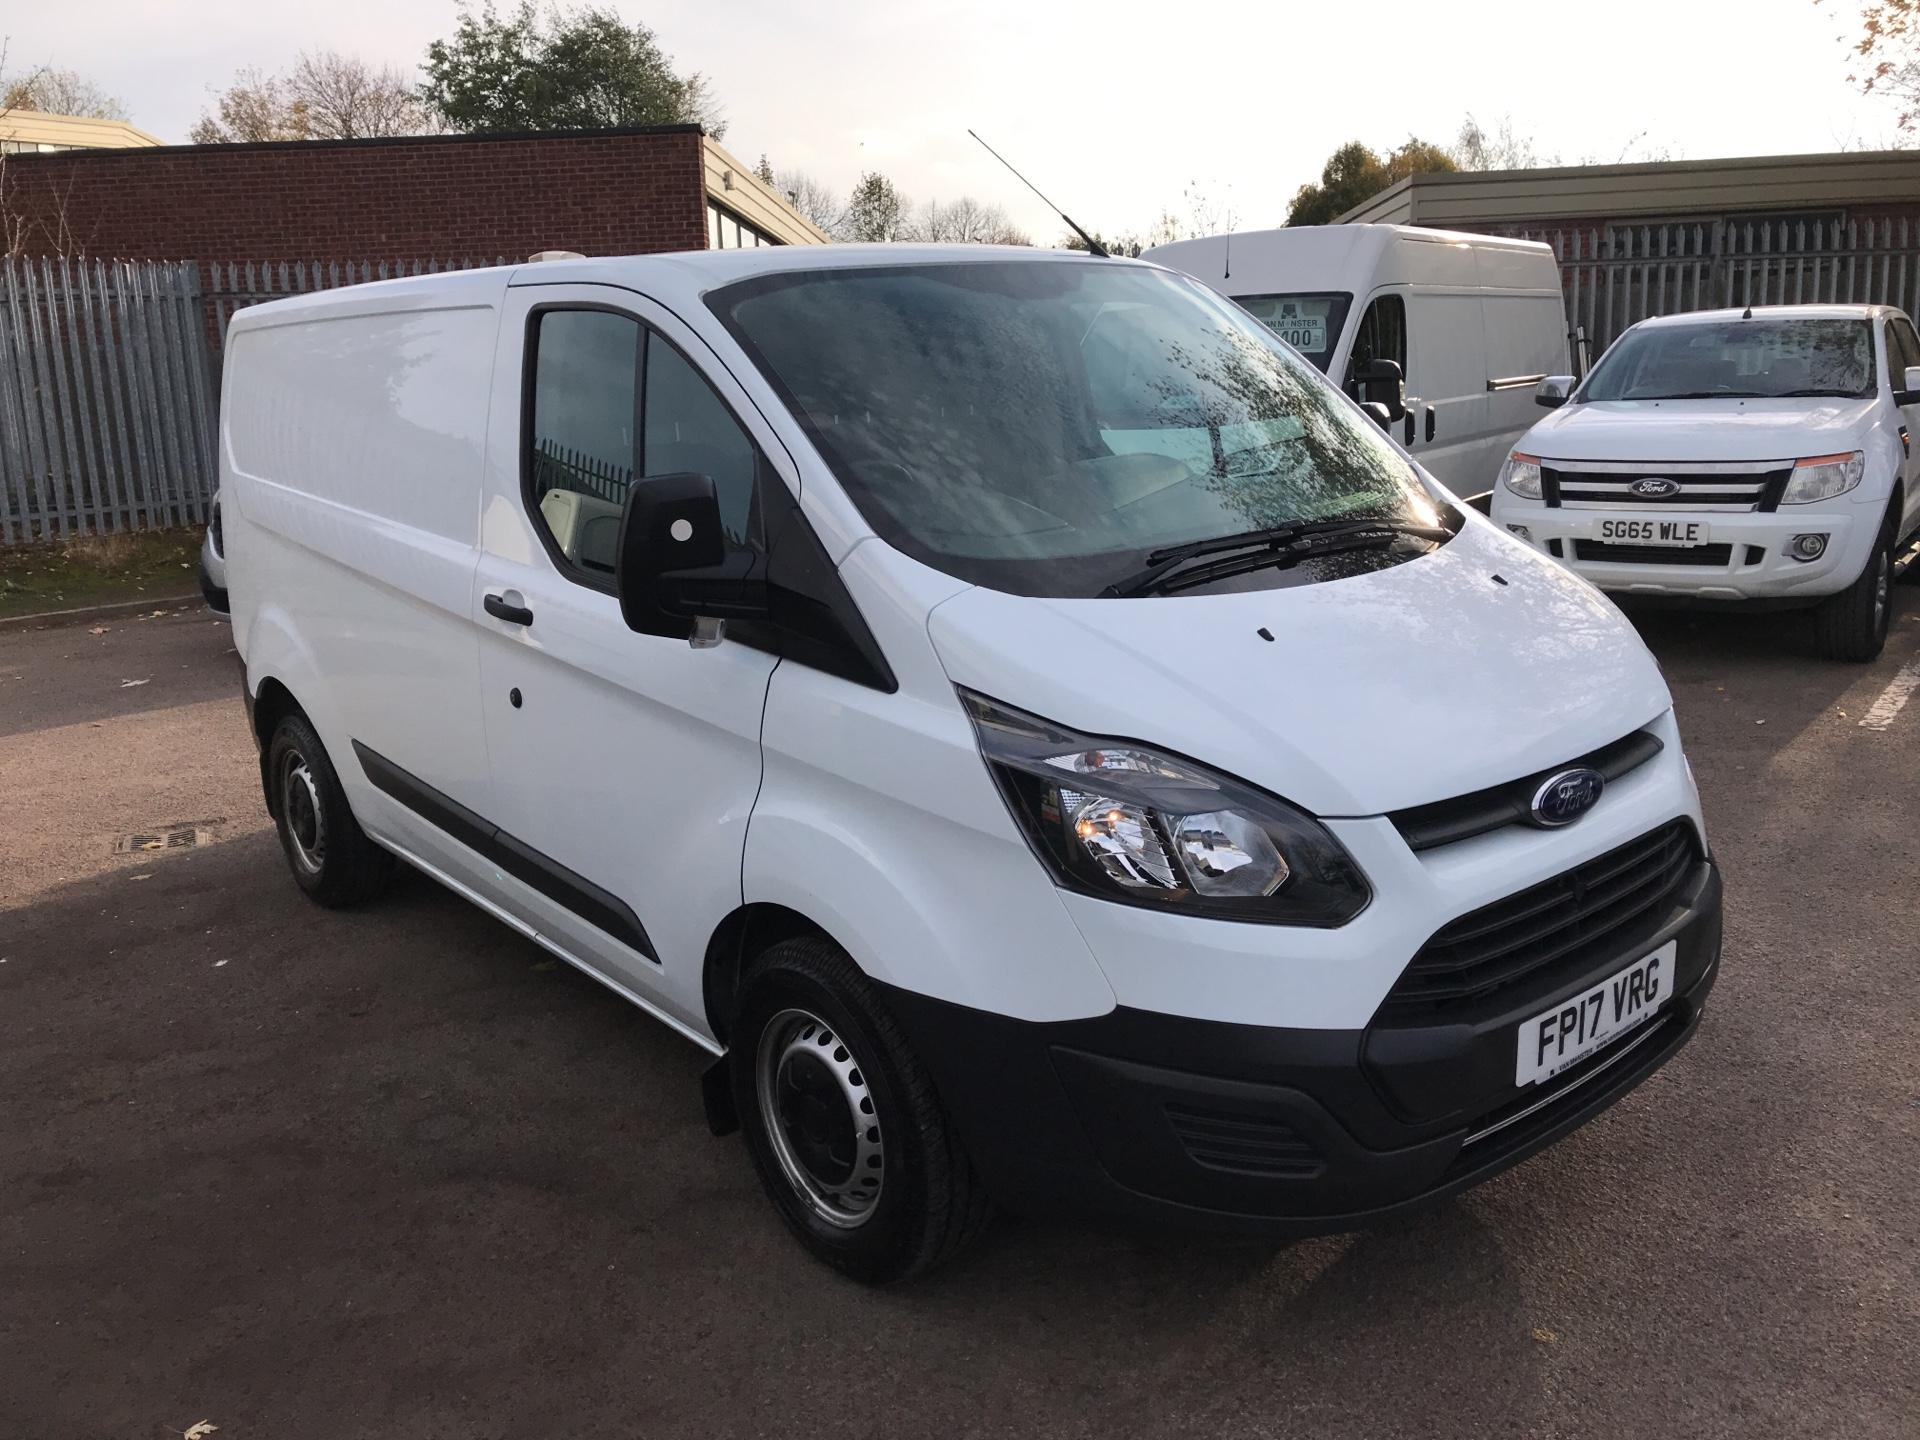 2017 Ford Transit Custom  290 L1 DIESEL FWD 2.0 TDCI 105PS LOW ROOF VAN EURO 6 (Internal Racking) (FP17VRG)